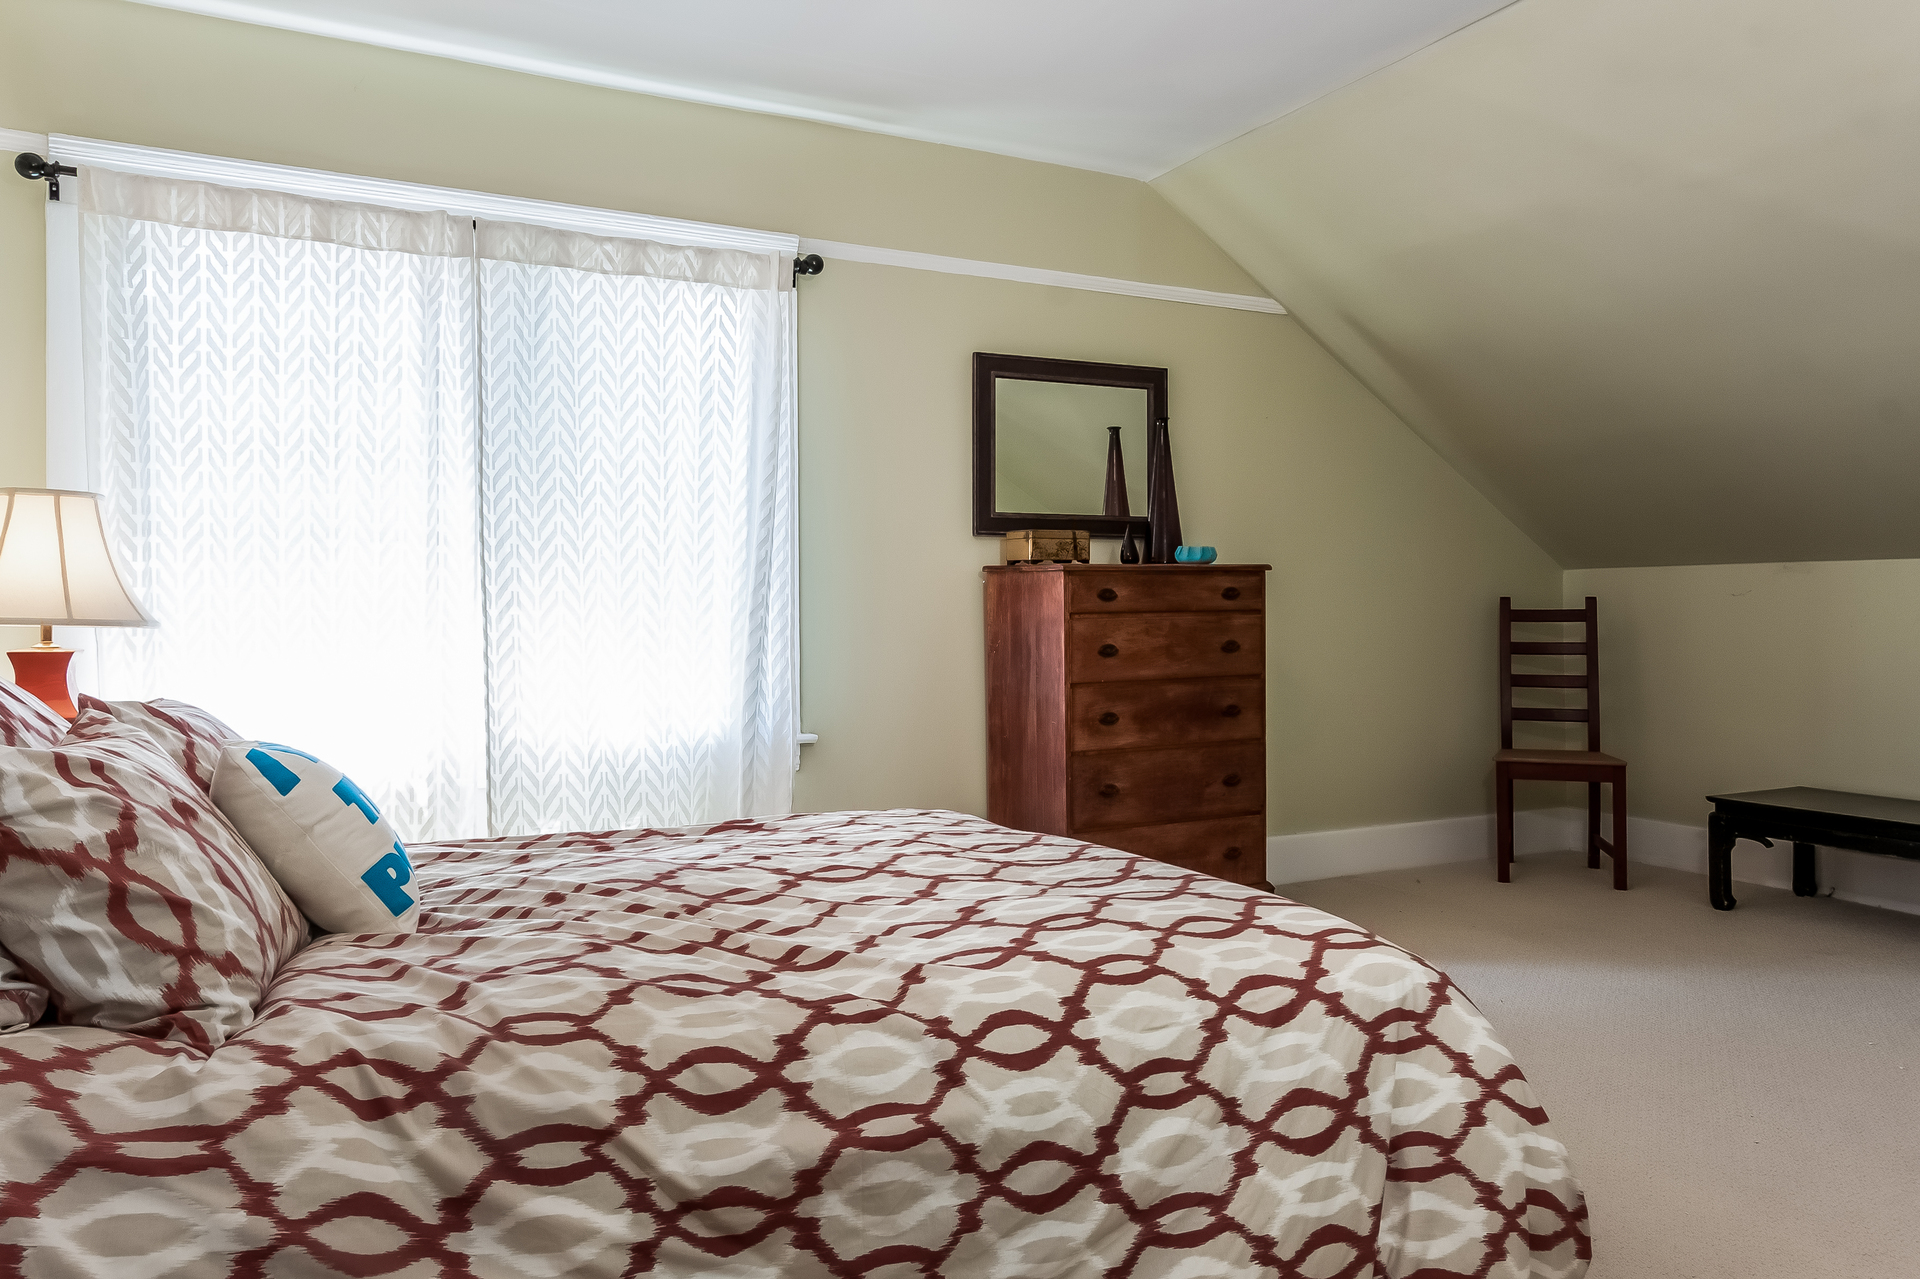 018-Bedroom-1926900-medium.jpg